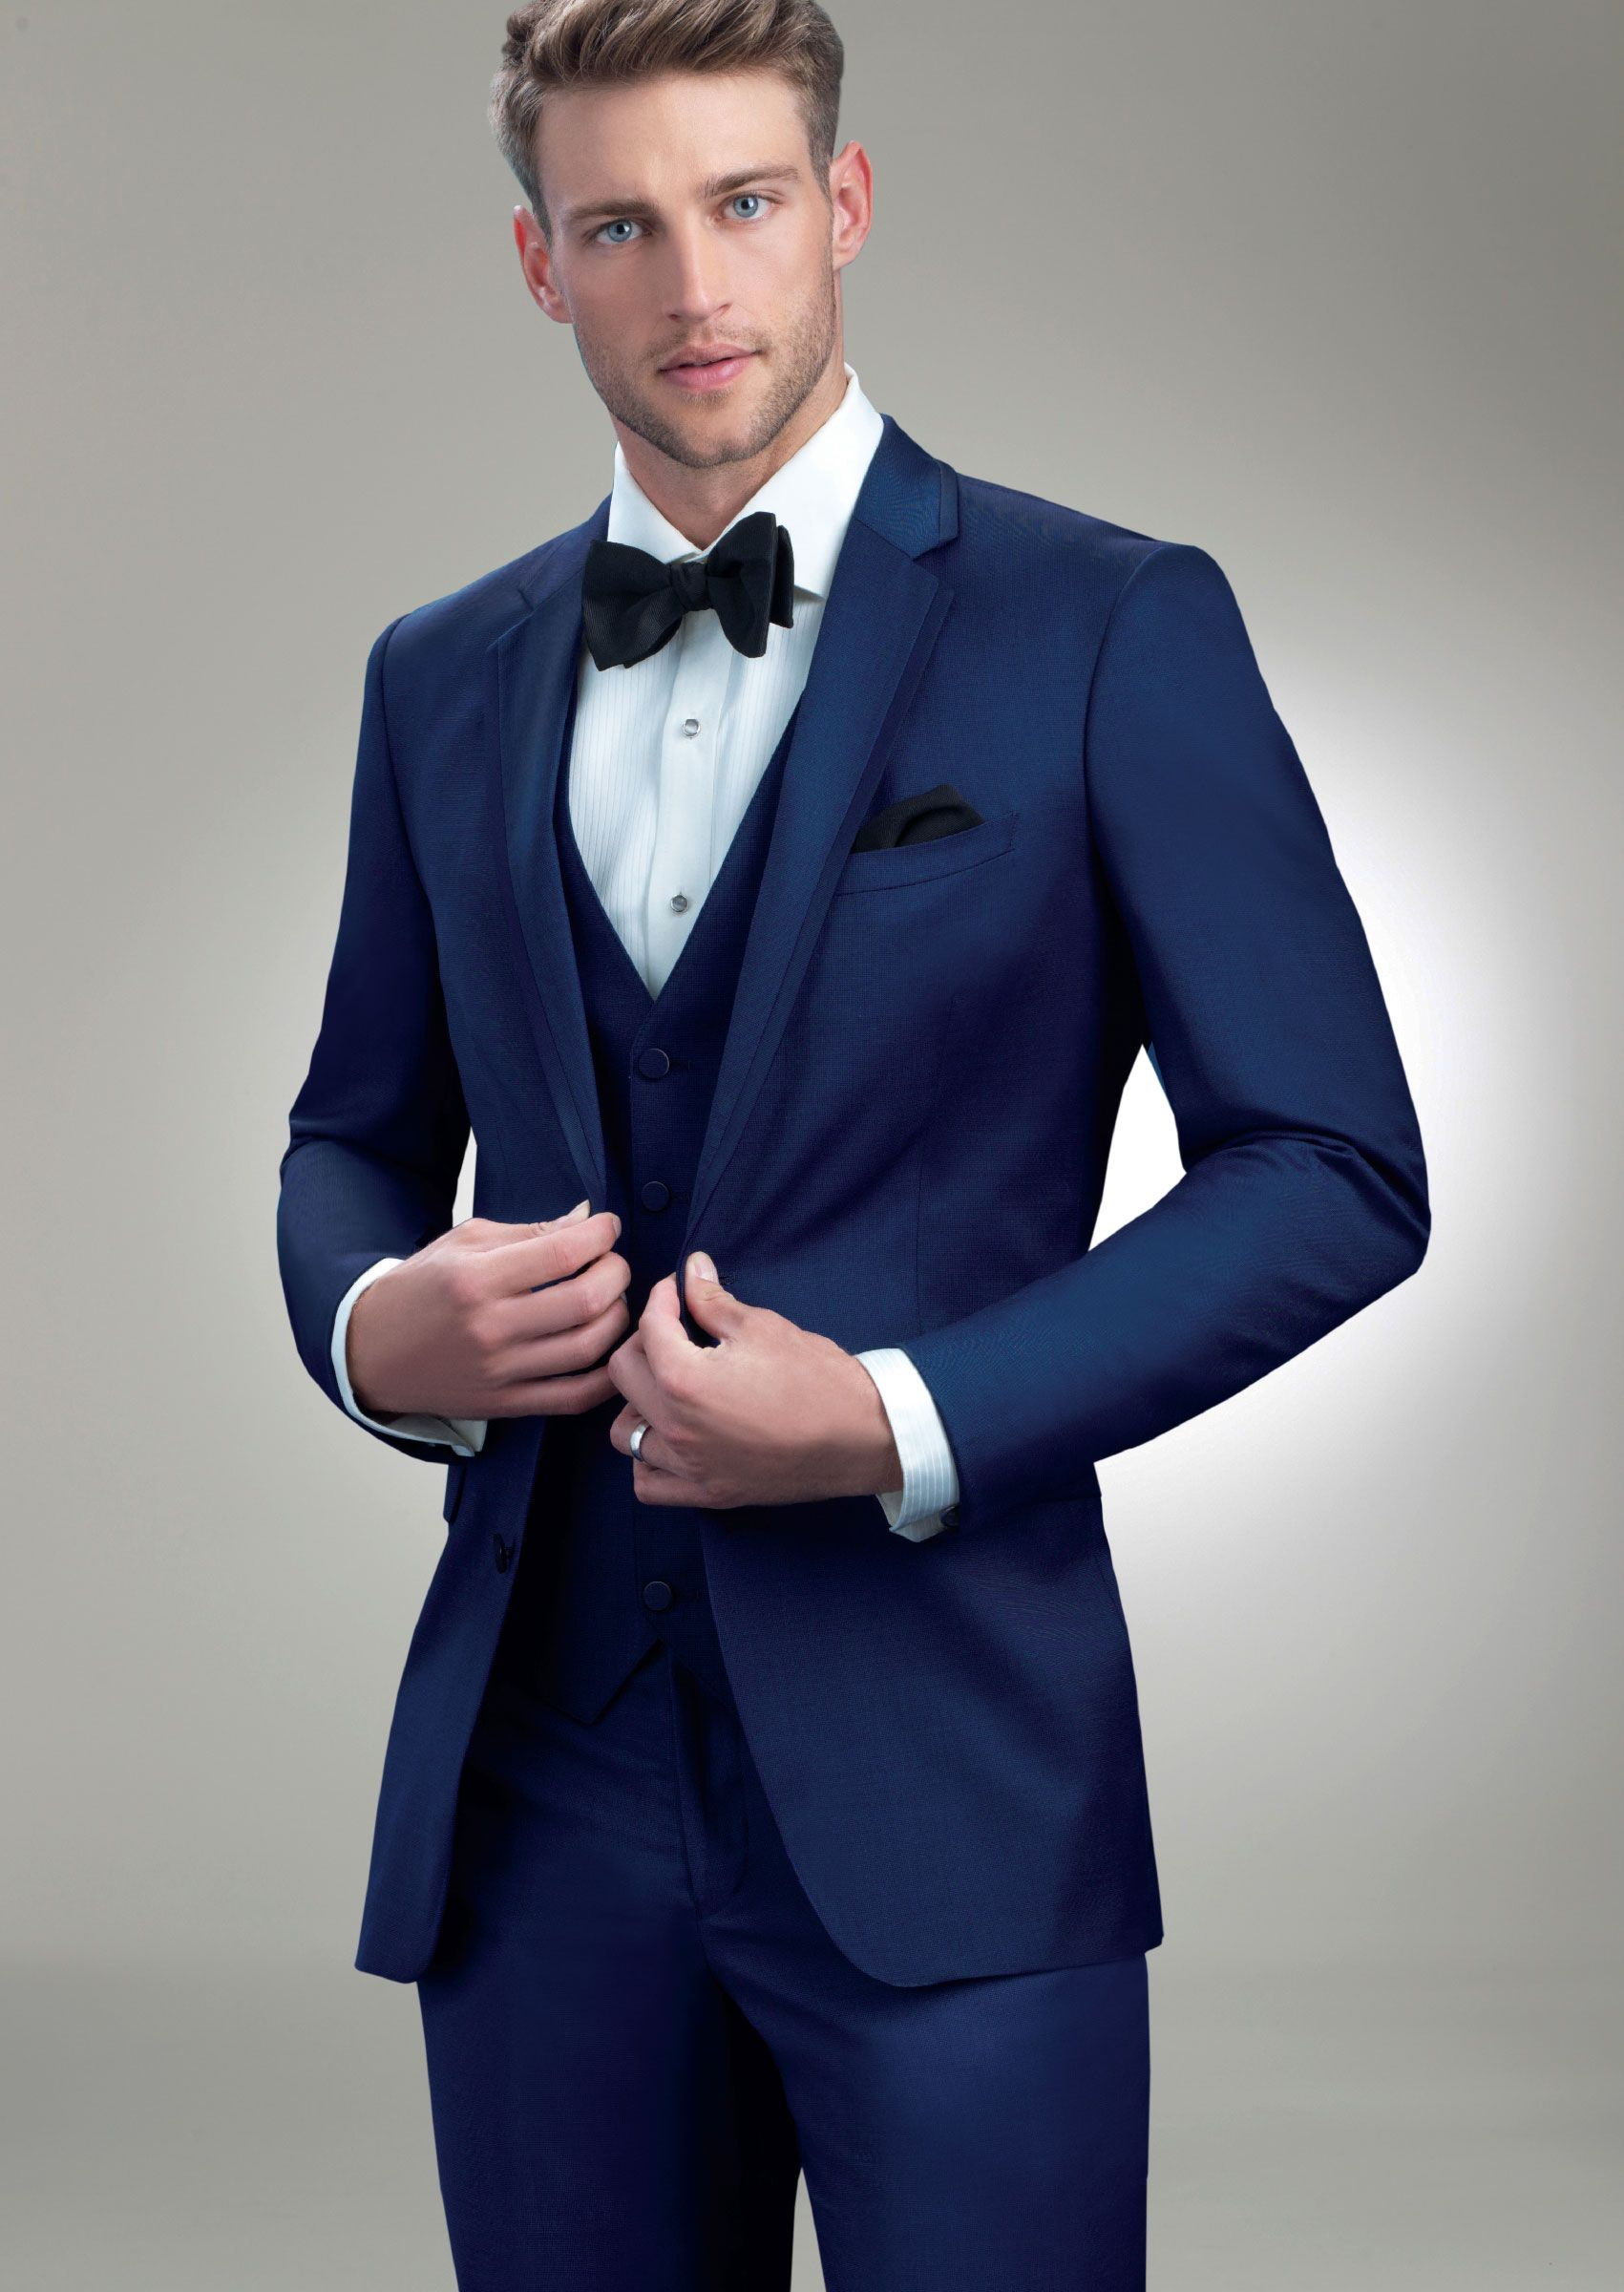 Allure Cobalt Royal Blue Tuxedo ACS Formals, Moncton NB | Wedding ...